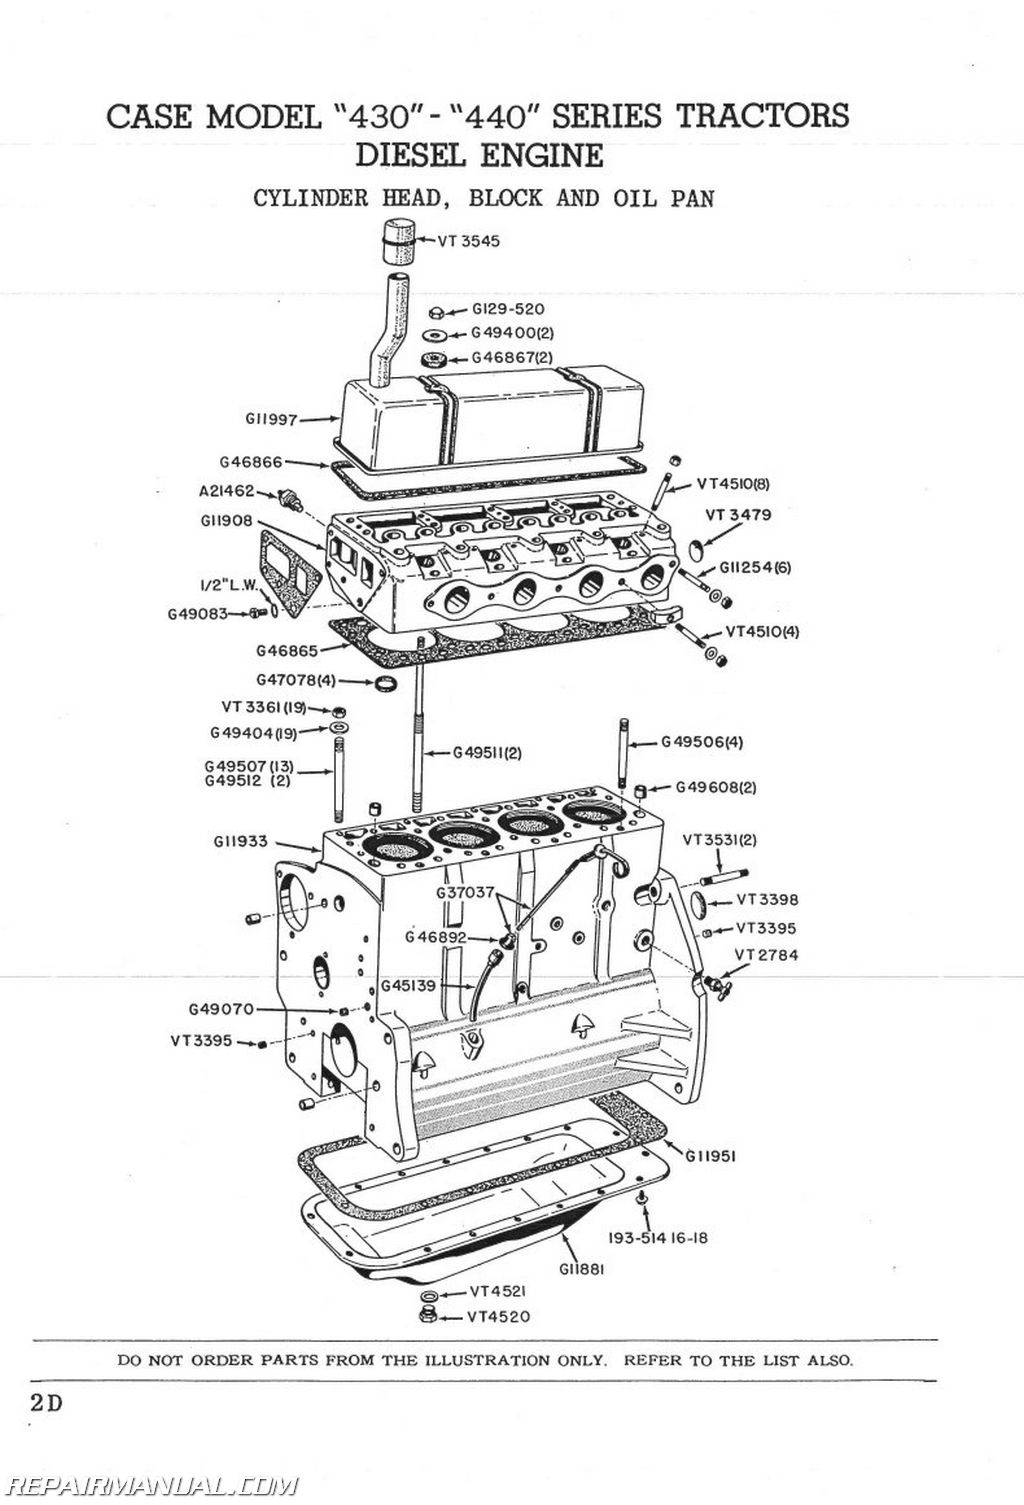 Craftsman 11324200 Parts List And Diagram Manual Guide